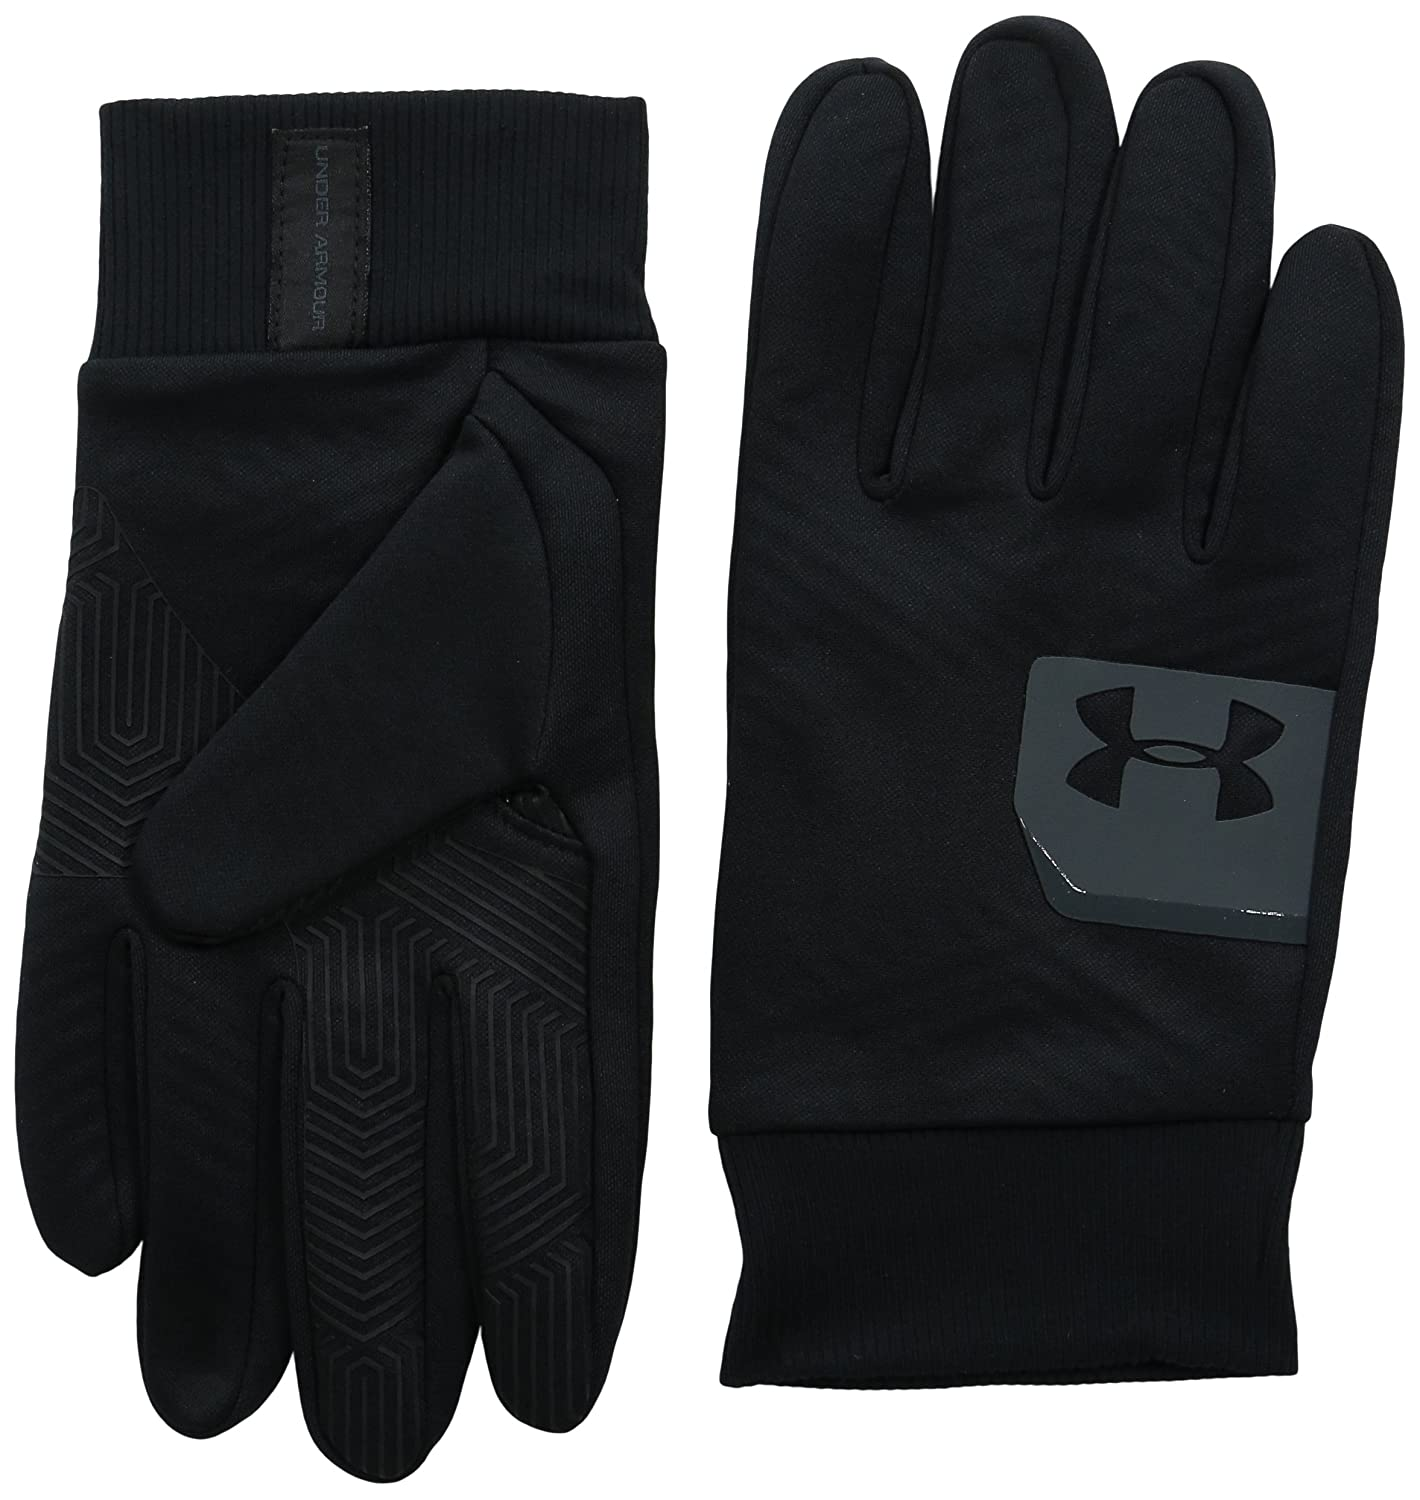 Under Armour Men's Core CGI Gloves UNDRJ